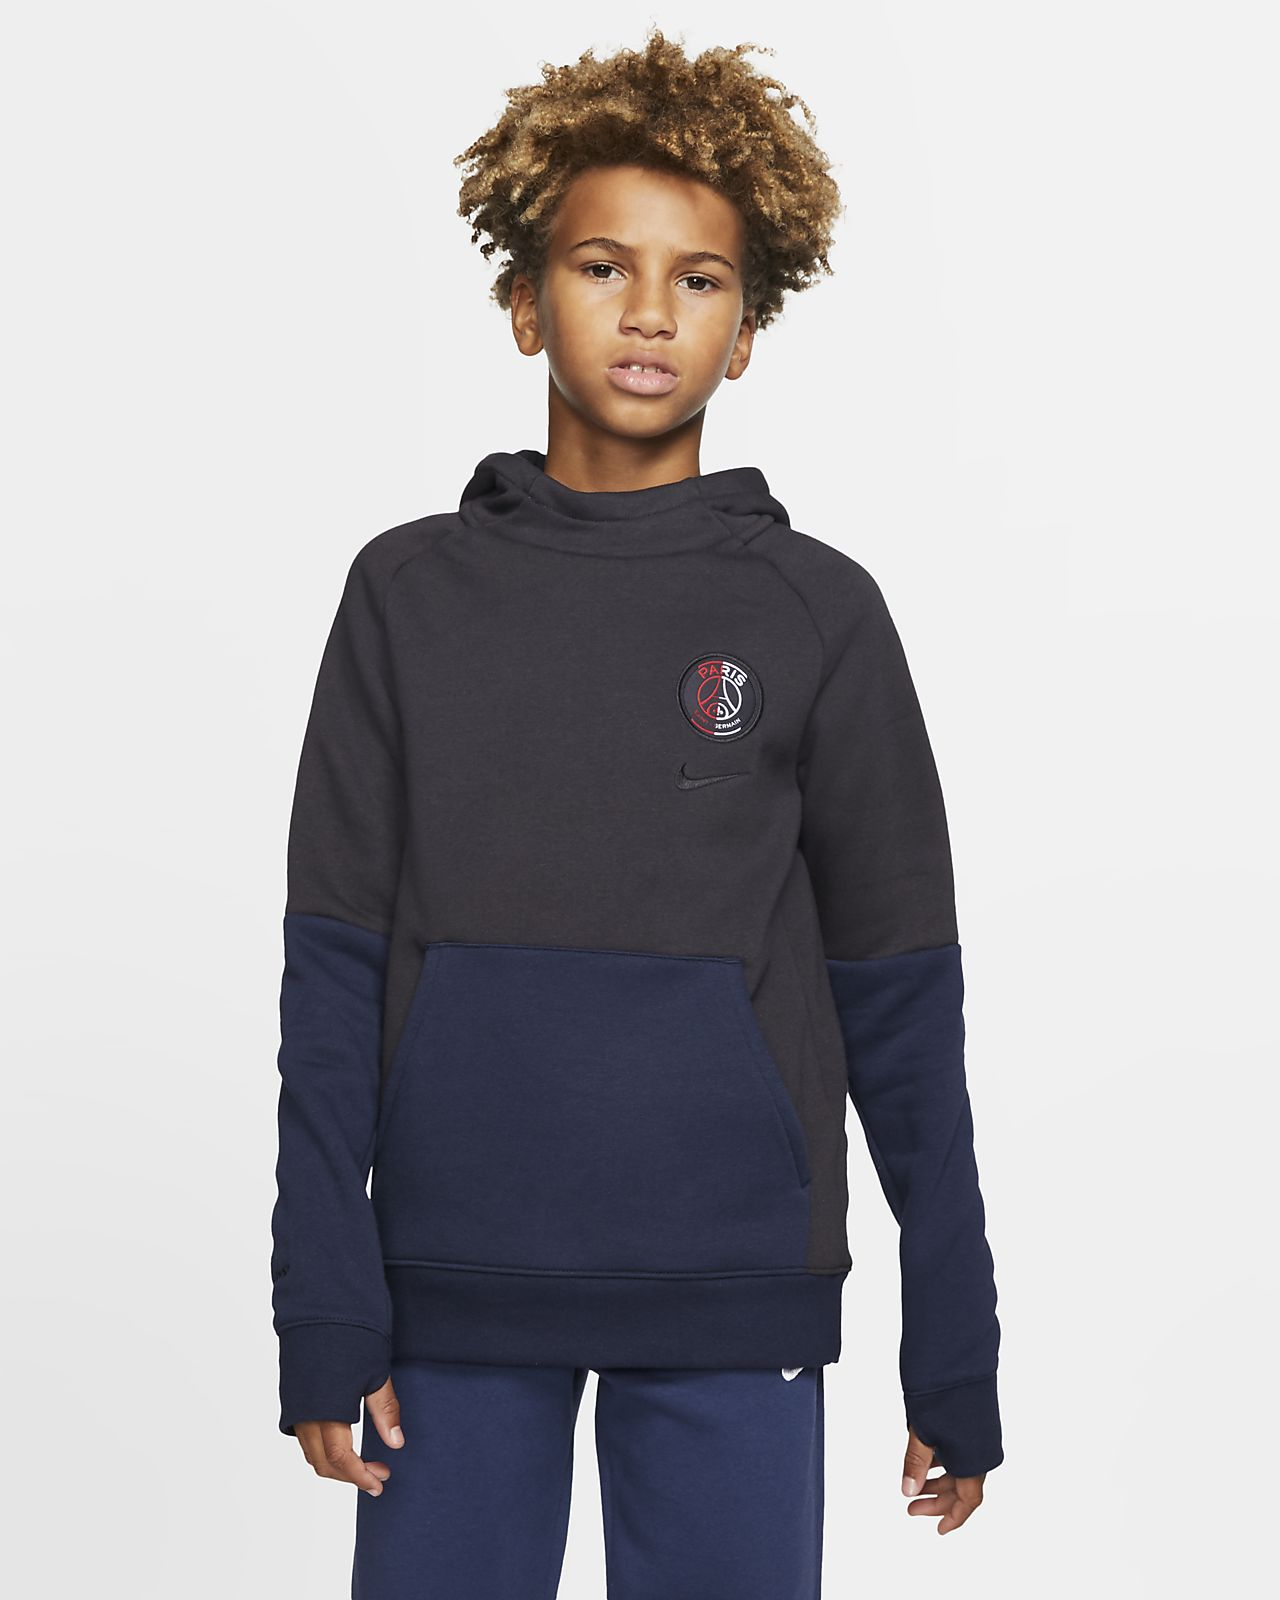 Sweat à capuche en tissu Fleece Paris Saint-Germain pour Enfant plus âgé